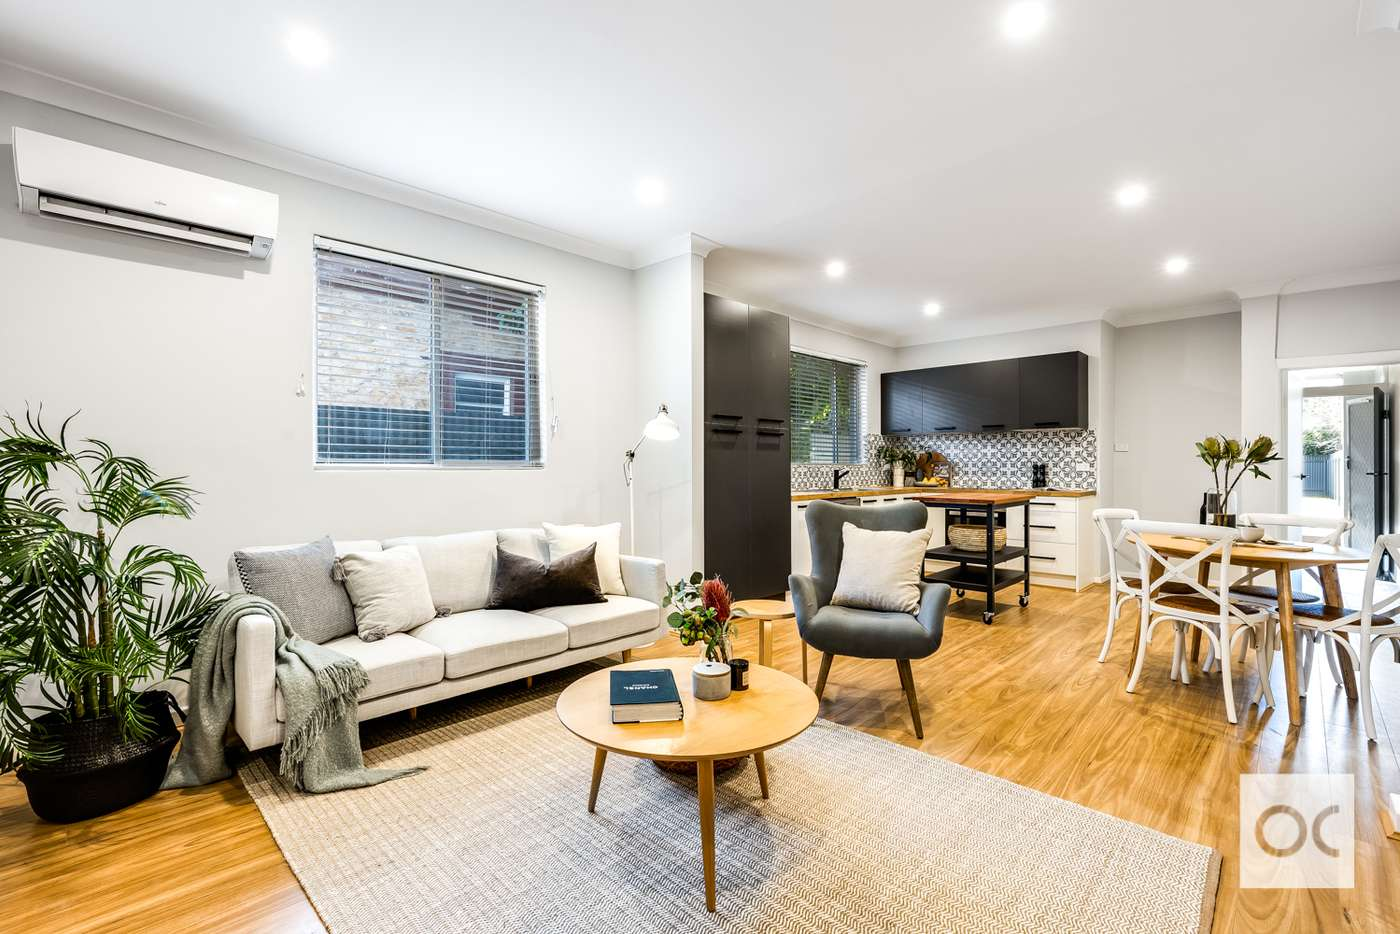 Sixth view of Homely house listing, 6 King Street, Mile End SA 5031